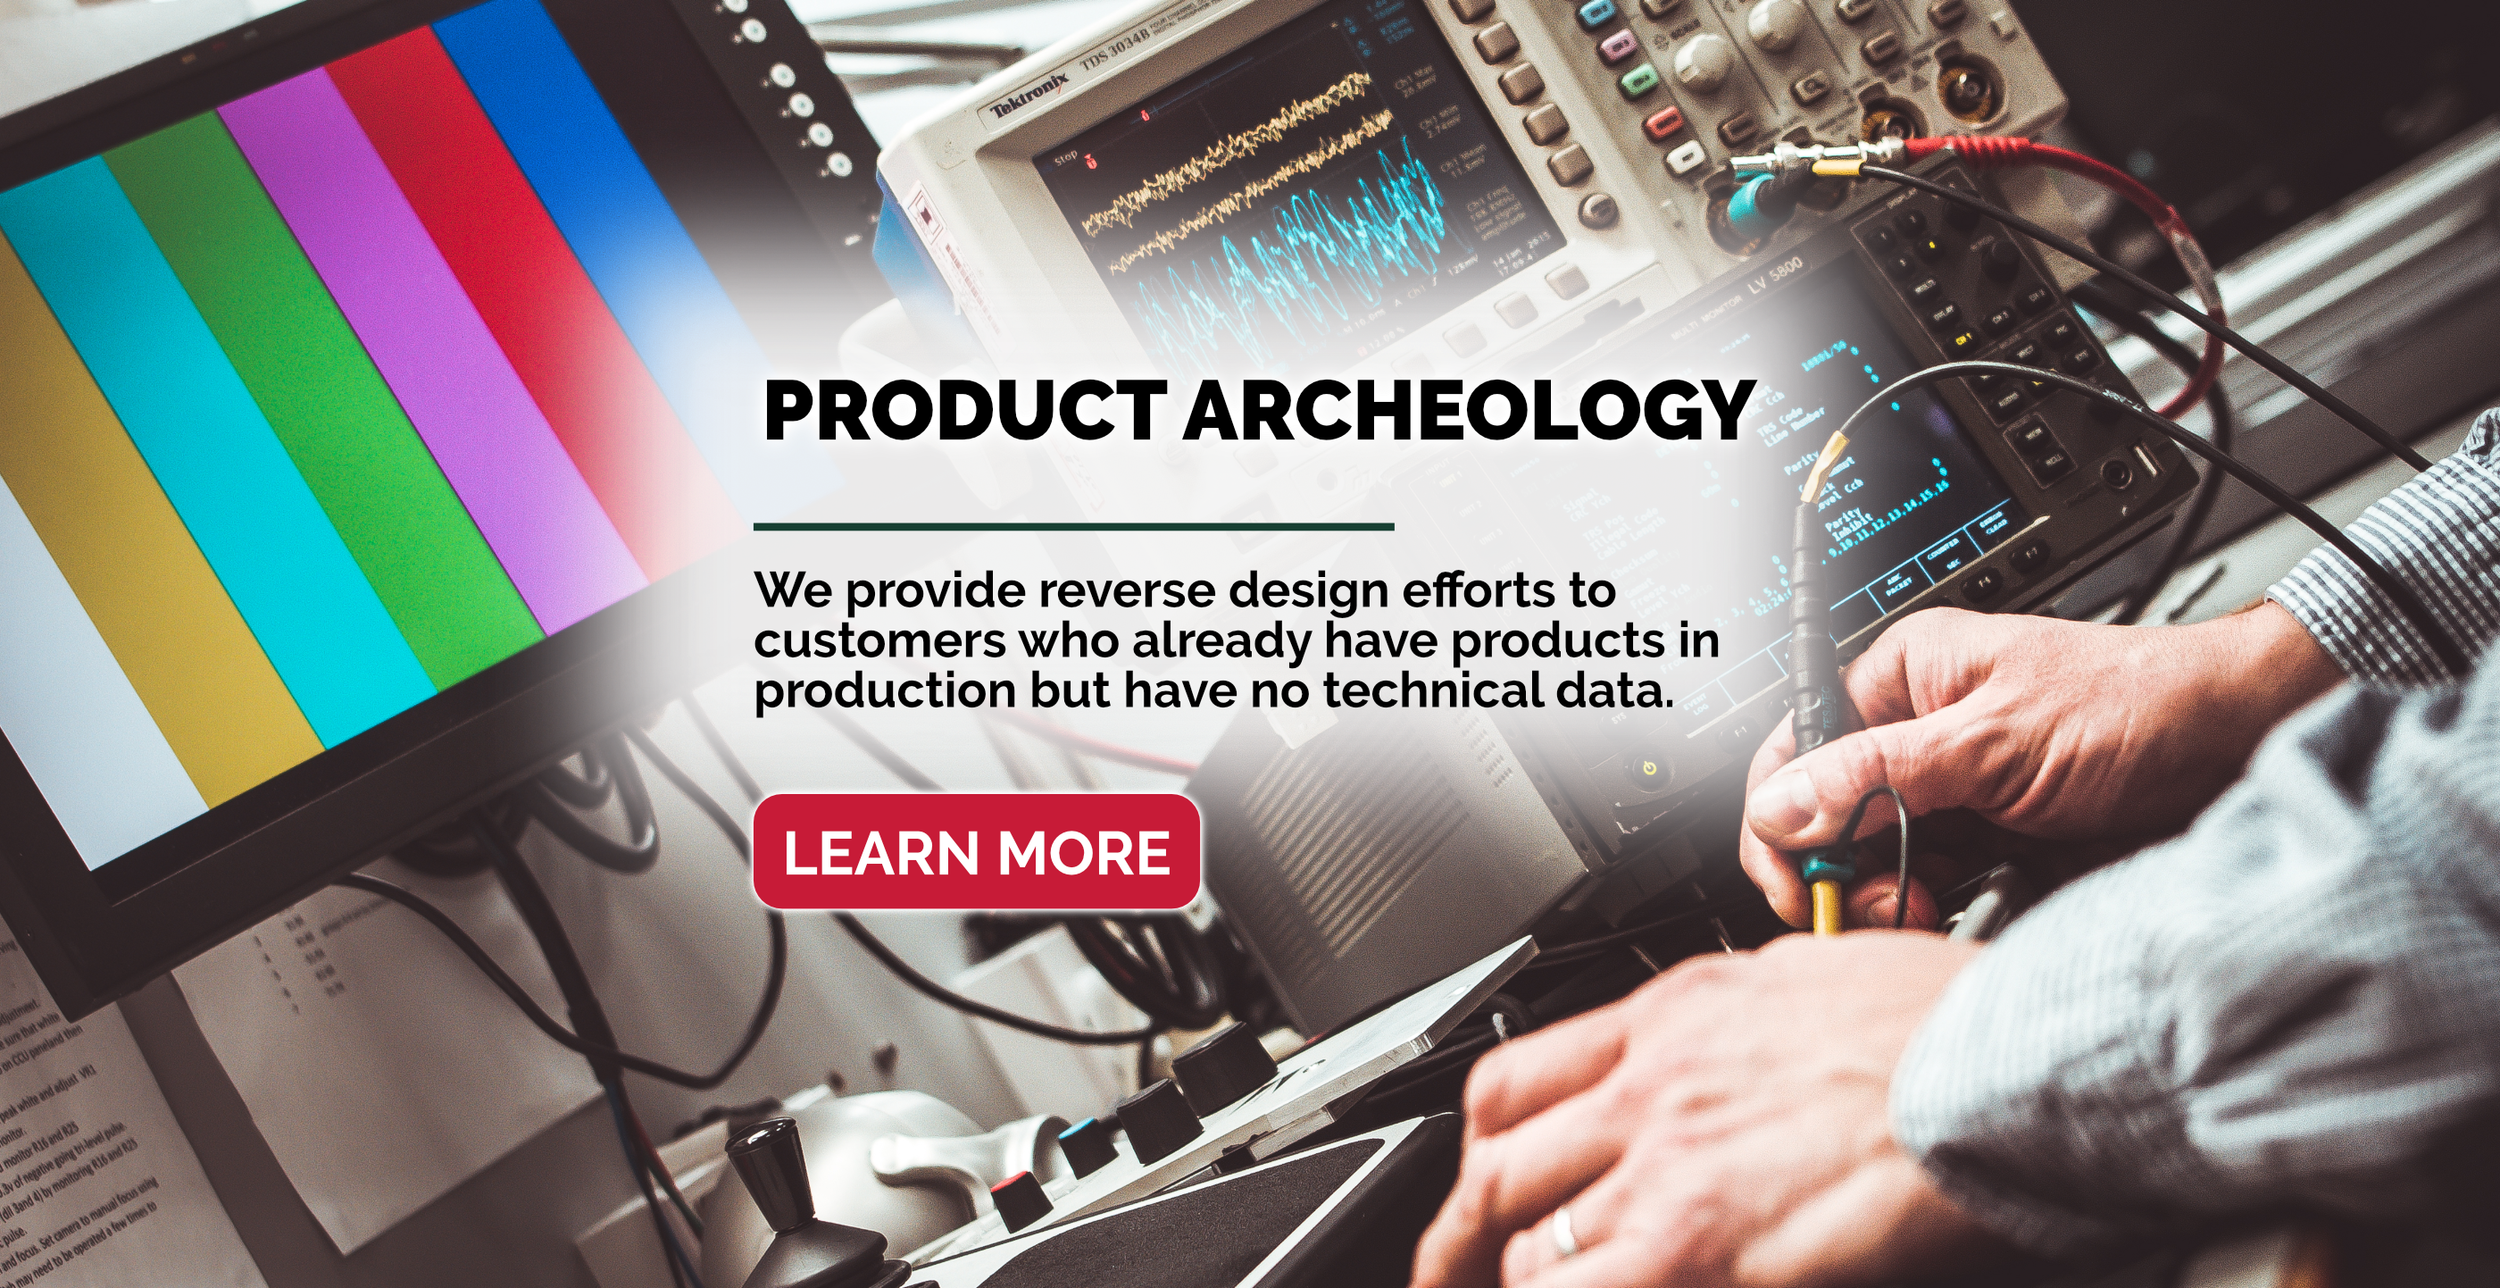 Product Archeology Homepage.png